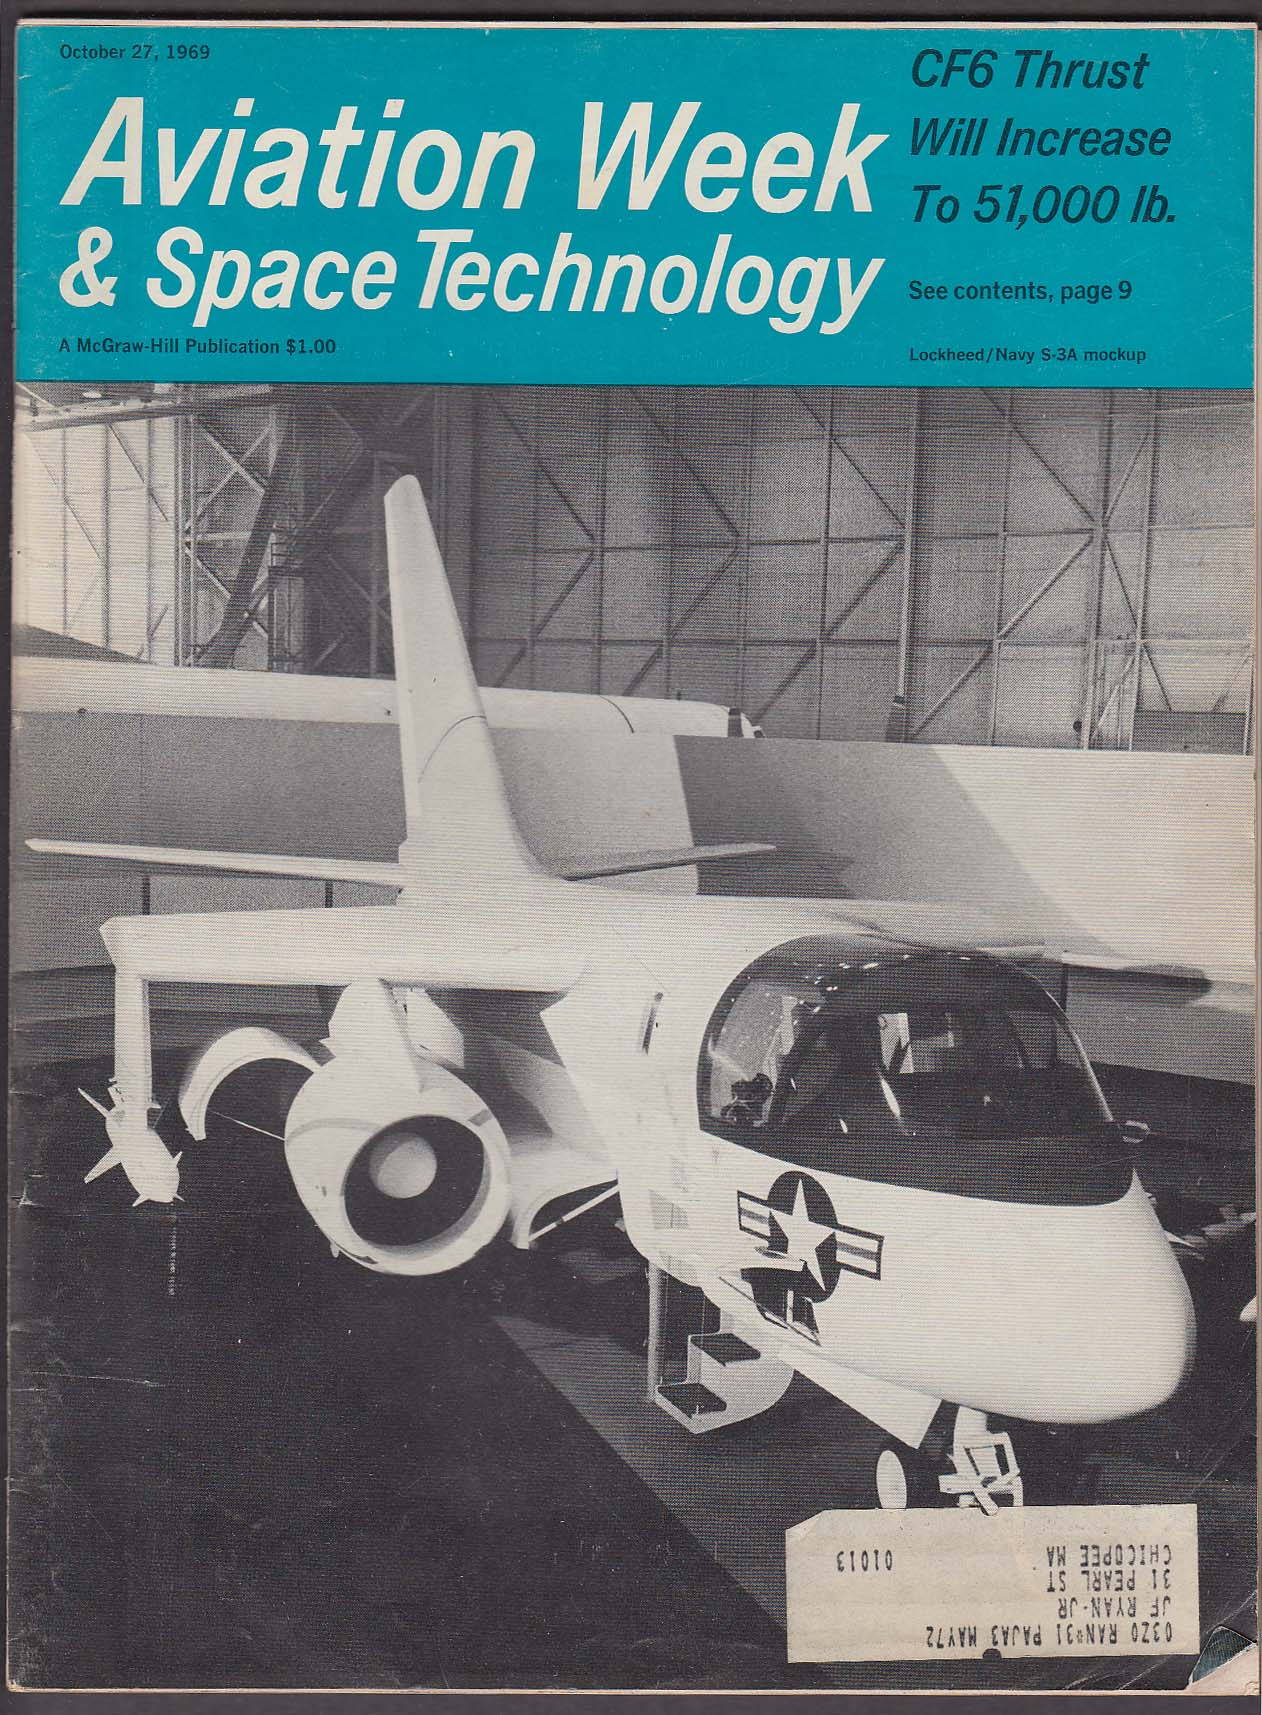 Image for AVIATION WEEK & Space Technology CF6 Soyuz Apollo 737 HueyCobra 10/27 1969